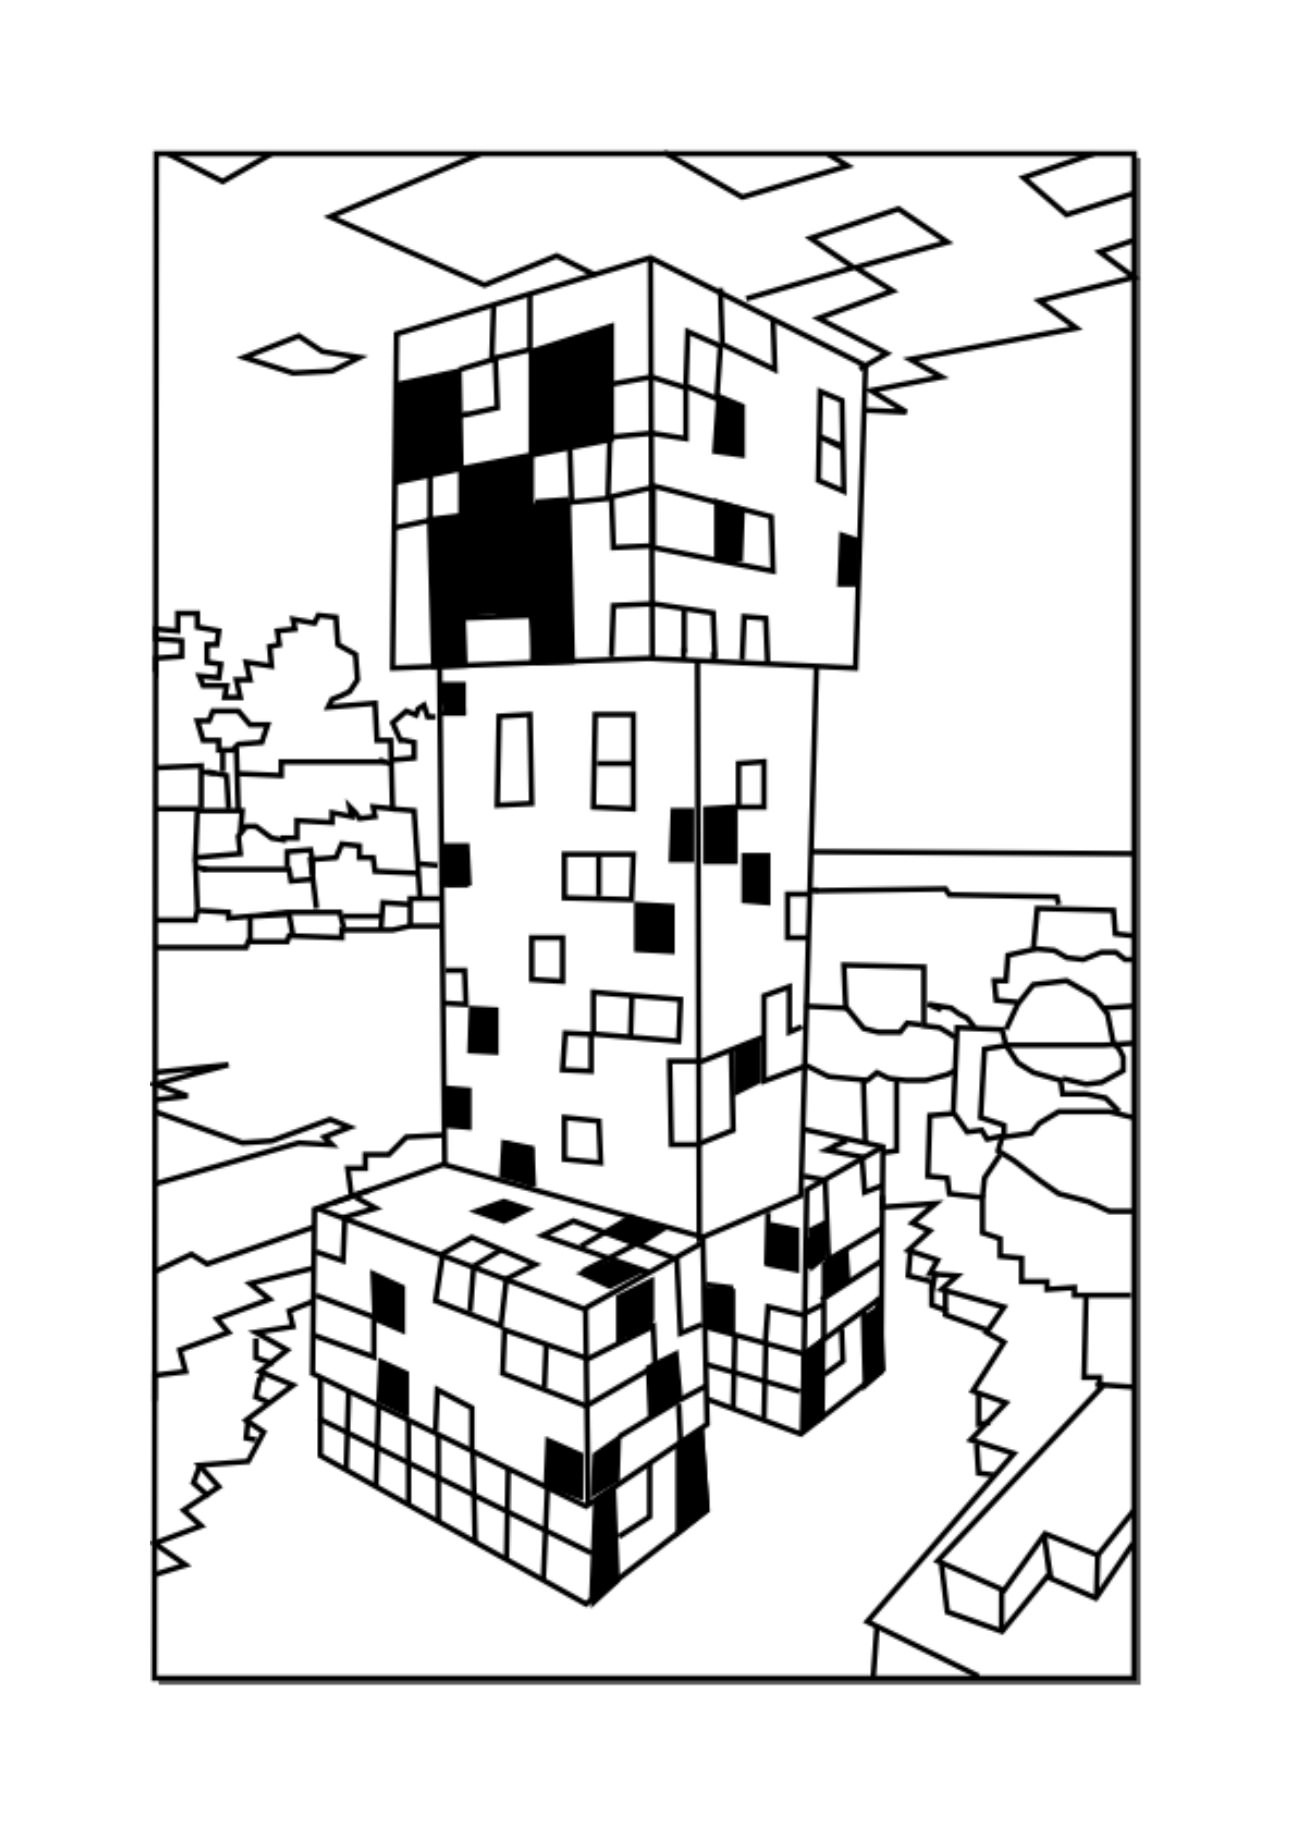 minecraft golden apple coloring pages minecraft creeper coloring pages 2019 open coloring pages pages coloring golden minecraft apple